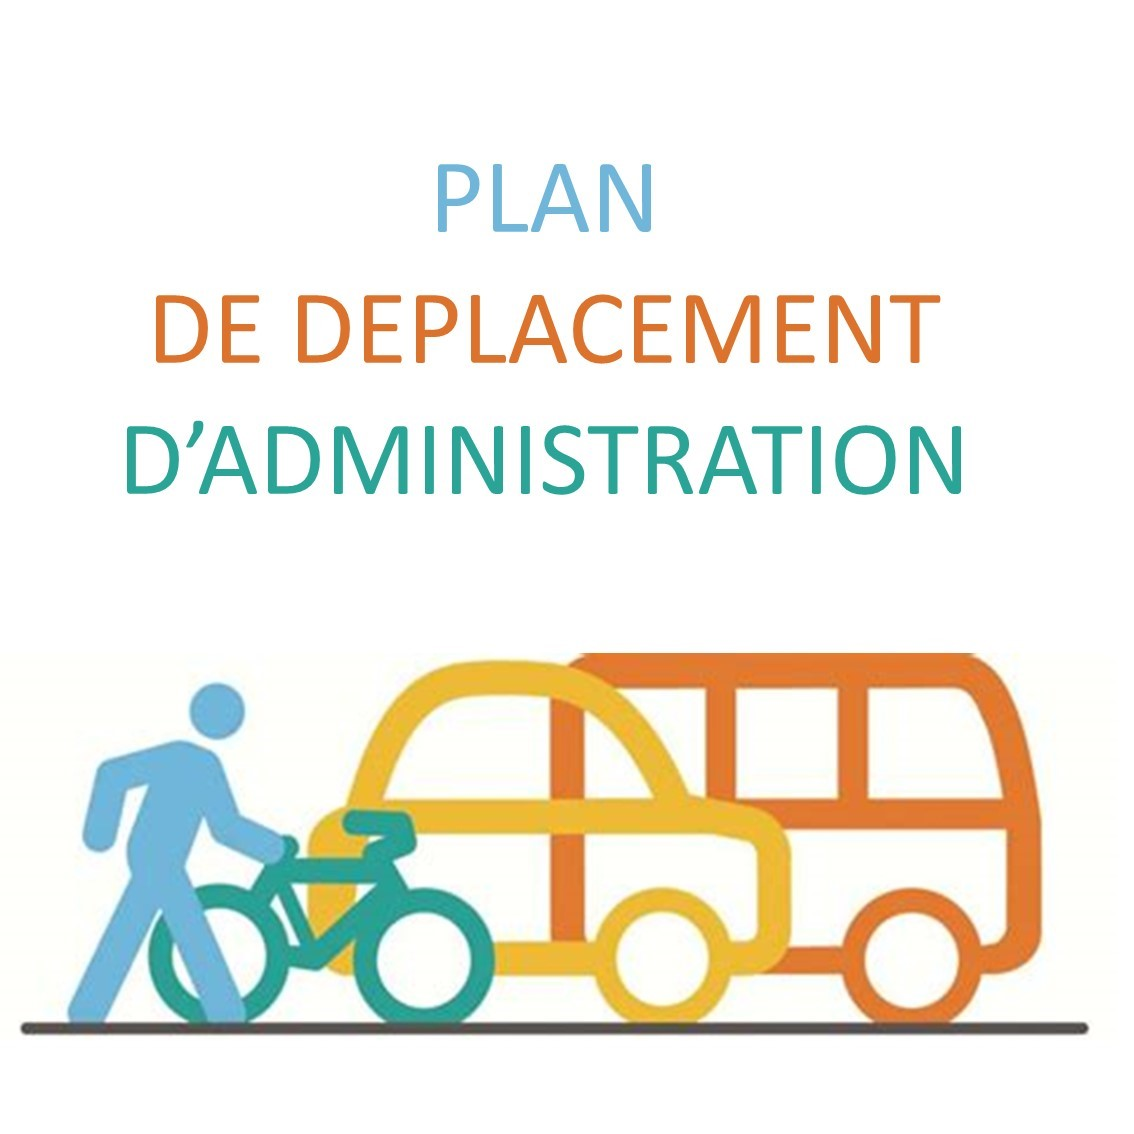 Plan de Deplacement d'Administration